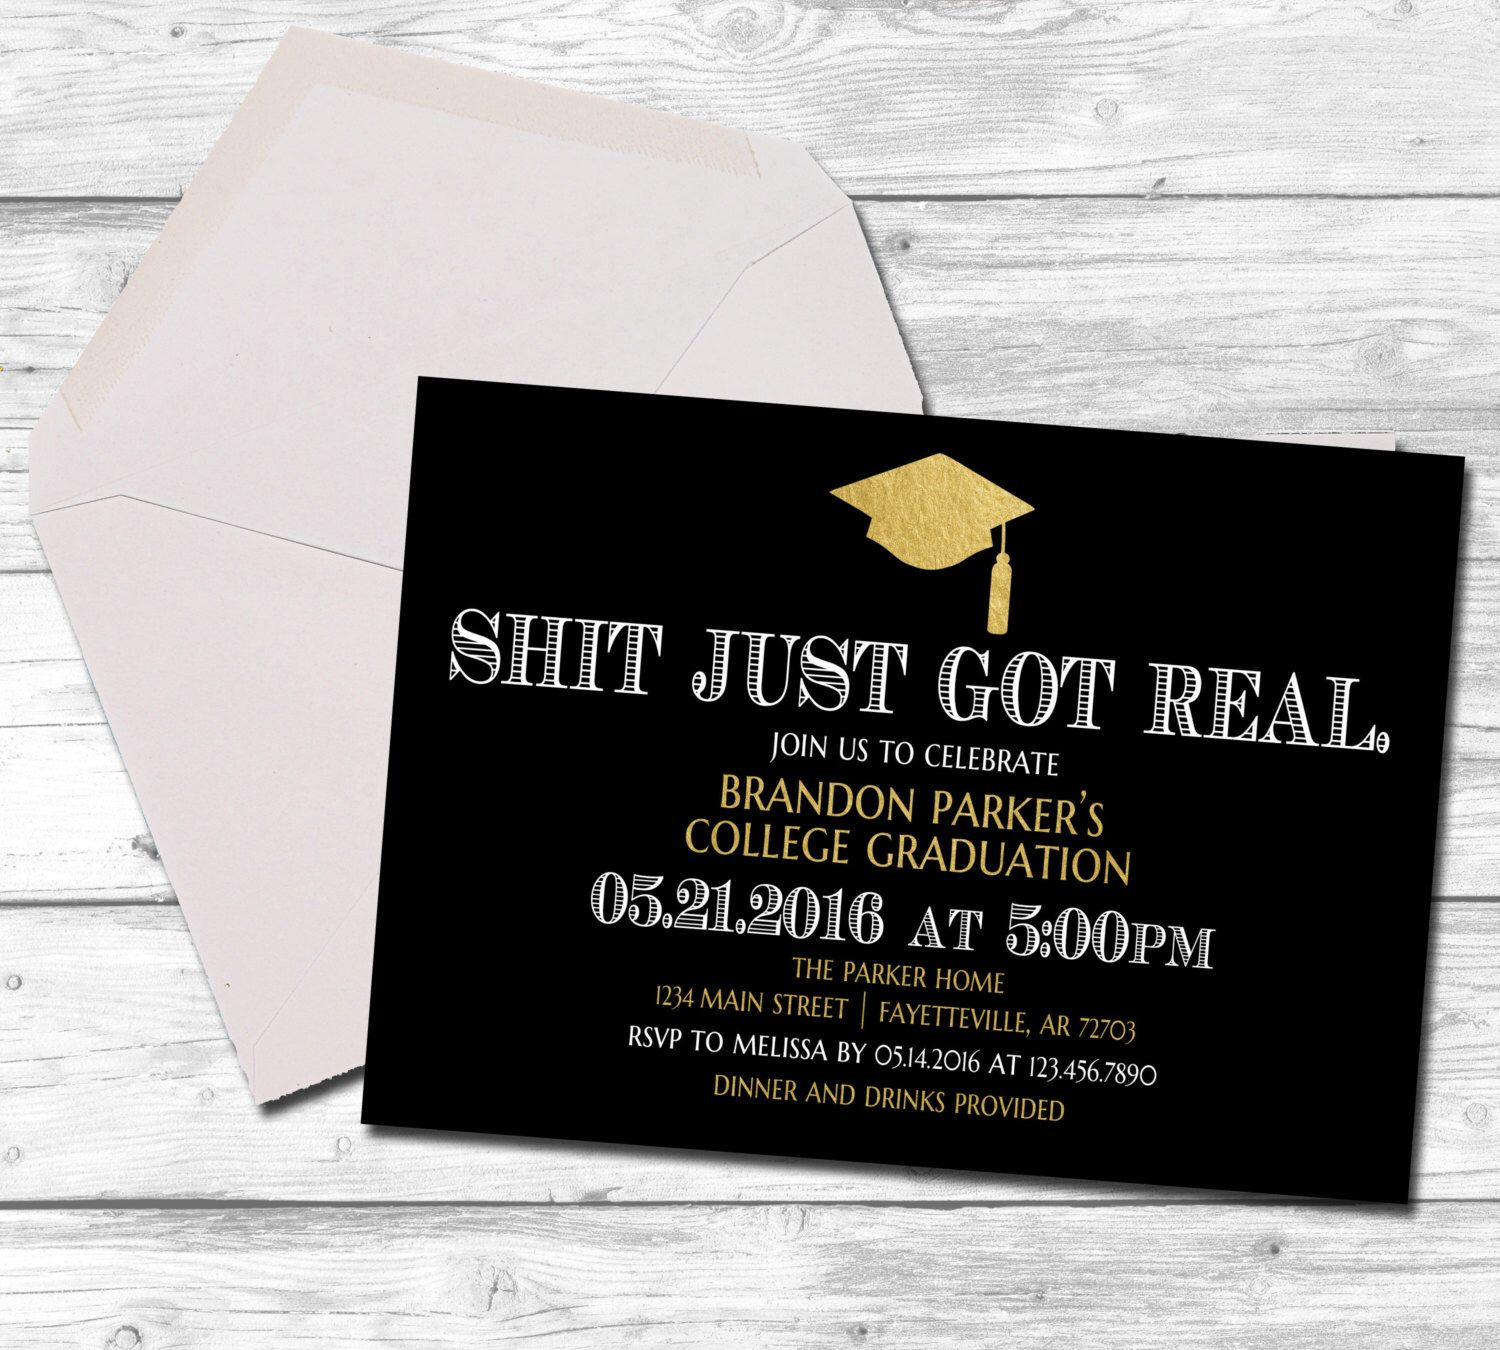 Graduation graduation invitation shit just got real black and graduation graduation invitation shit just got real black and gold college graduation high school funny invitation printable 5x7 filmwisefo Image collections